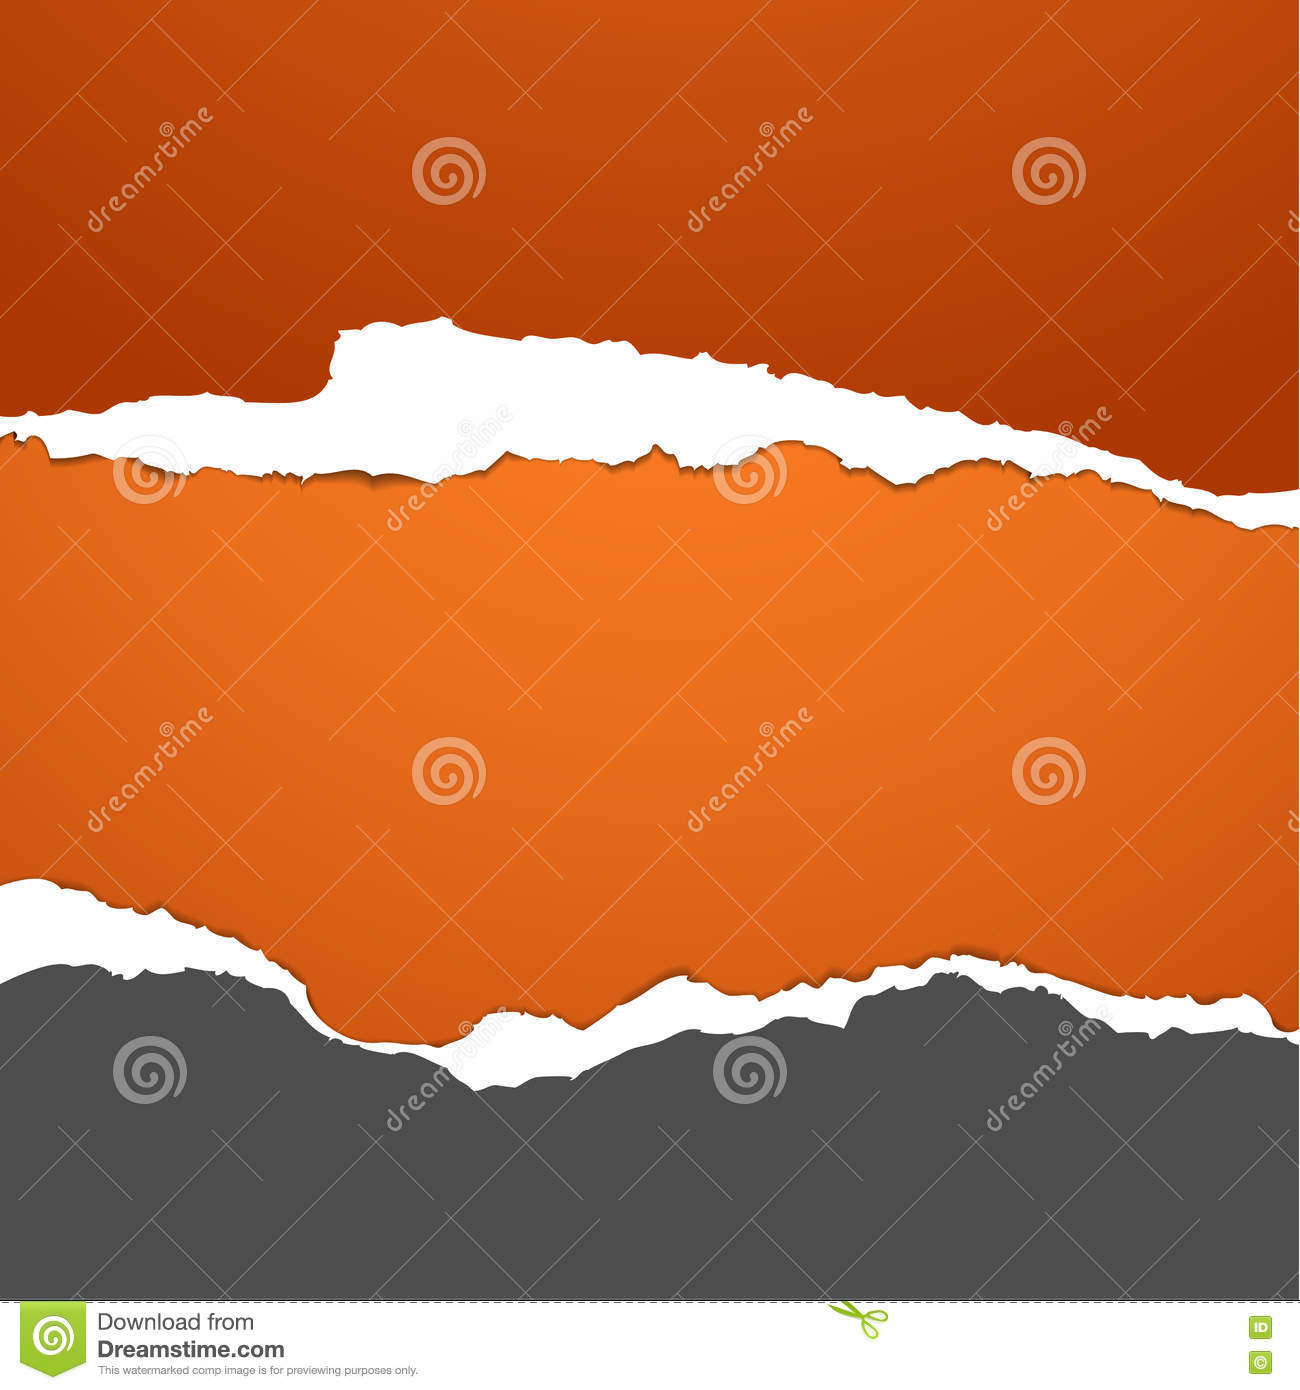 Torn Paper Stock Photo - Image: 74371683